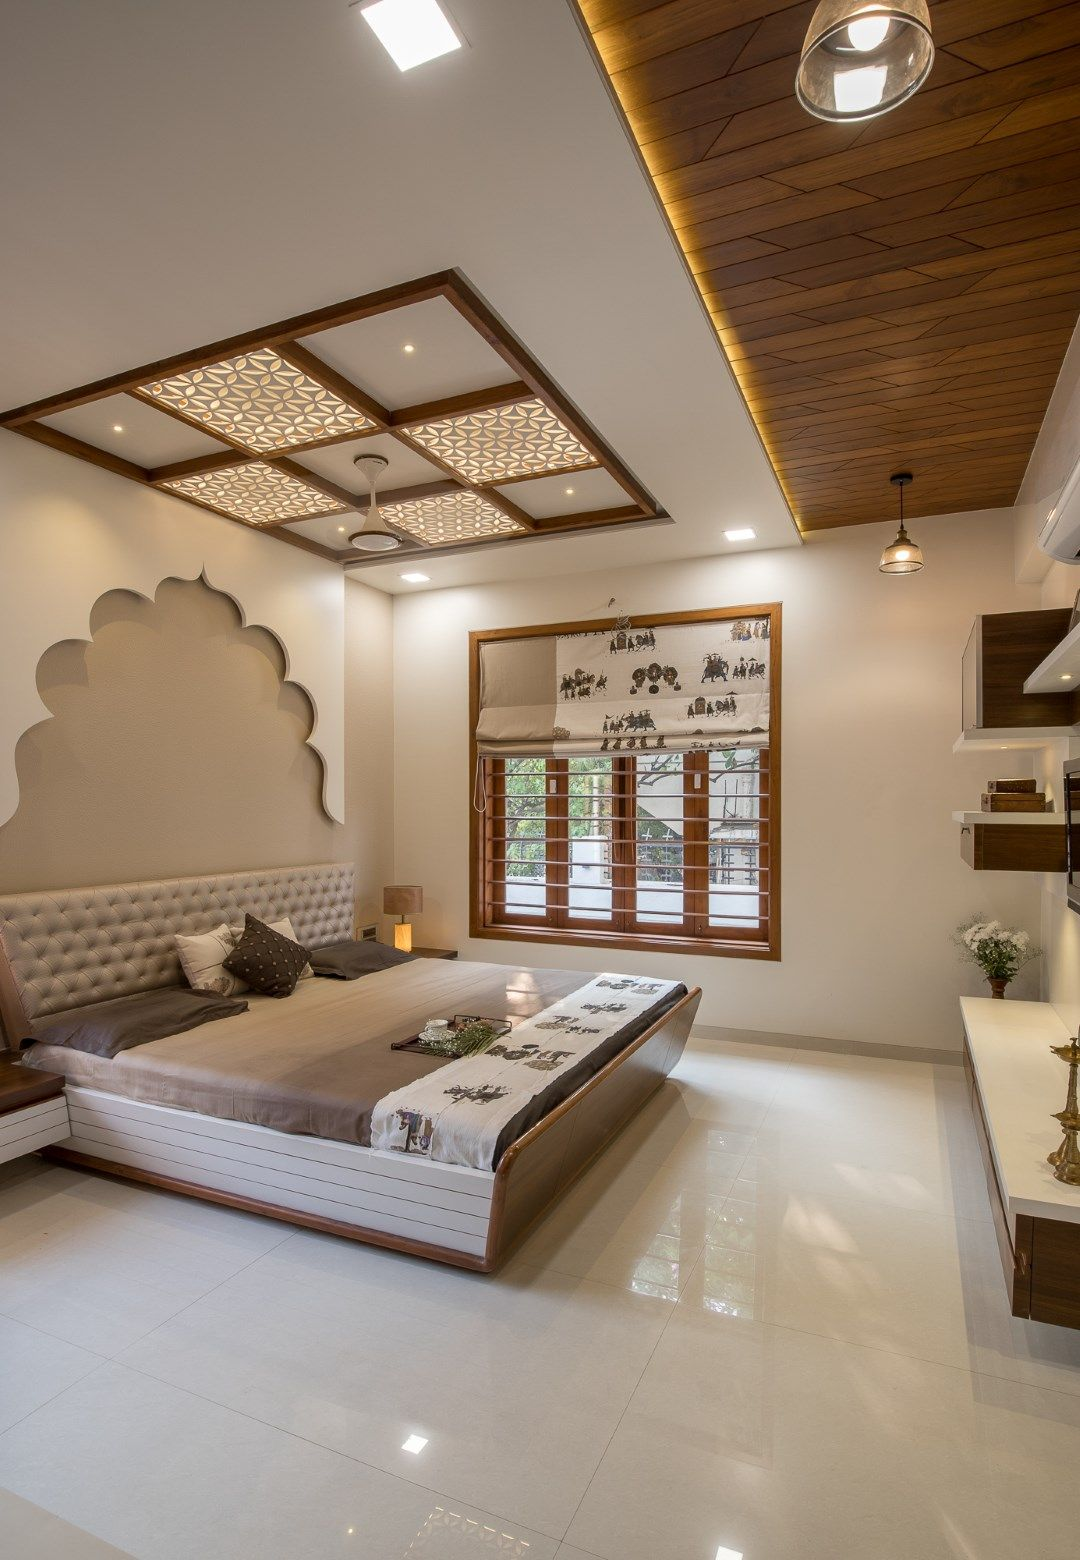 The Contemporary Cubic House Tvakshati Architects The Architects Diary Indian Bedroom Design Luxurious Bedrooms Cozy Bedroom Design